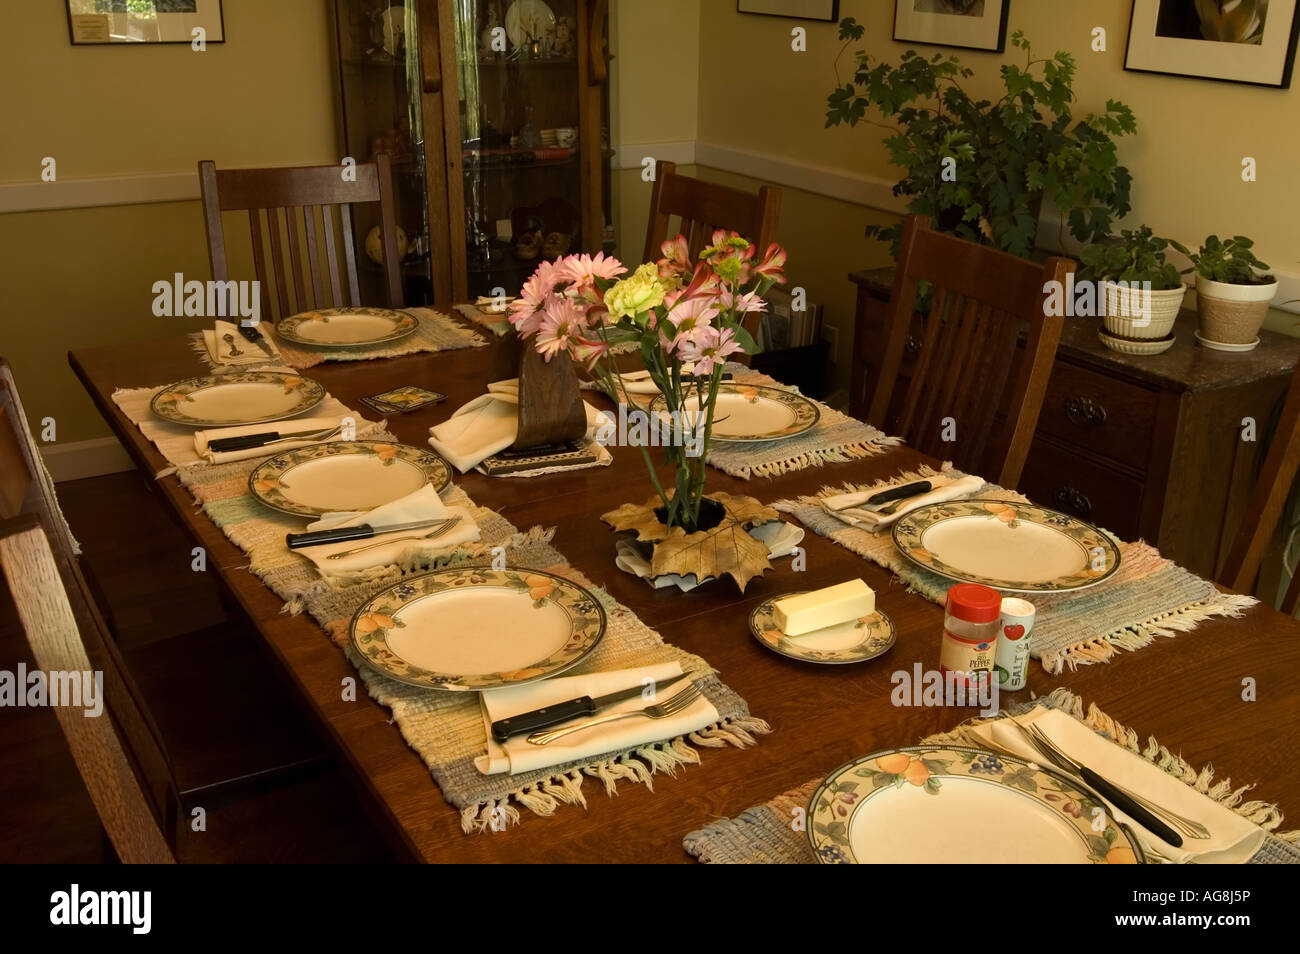 dining room table set up for meal - Dining Room Set Up